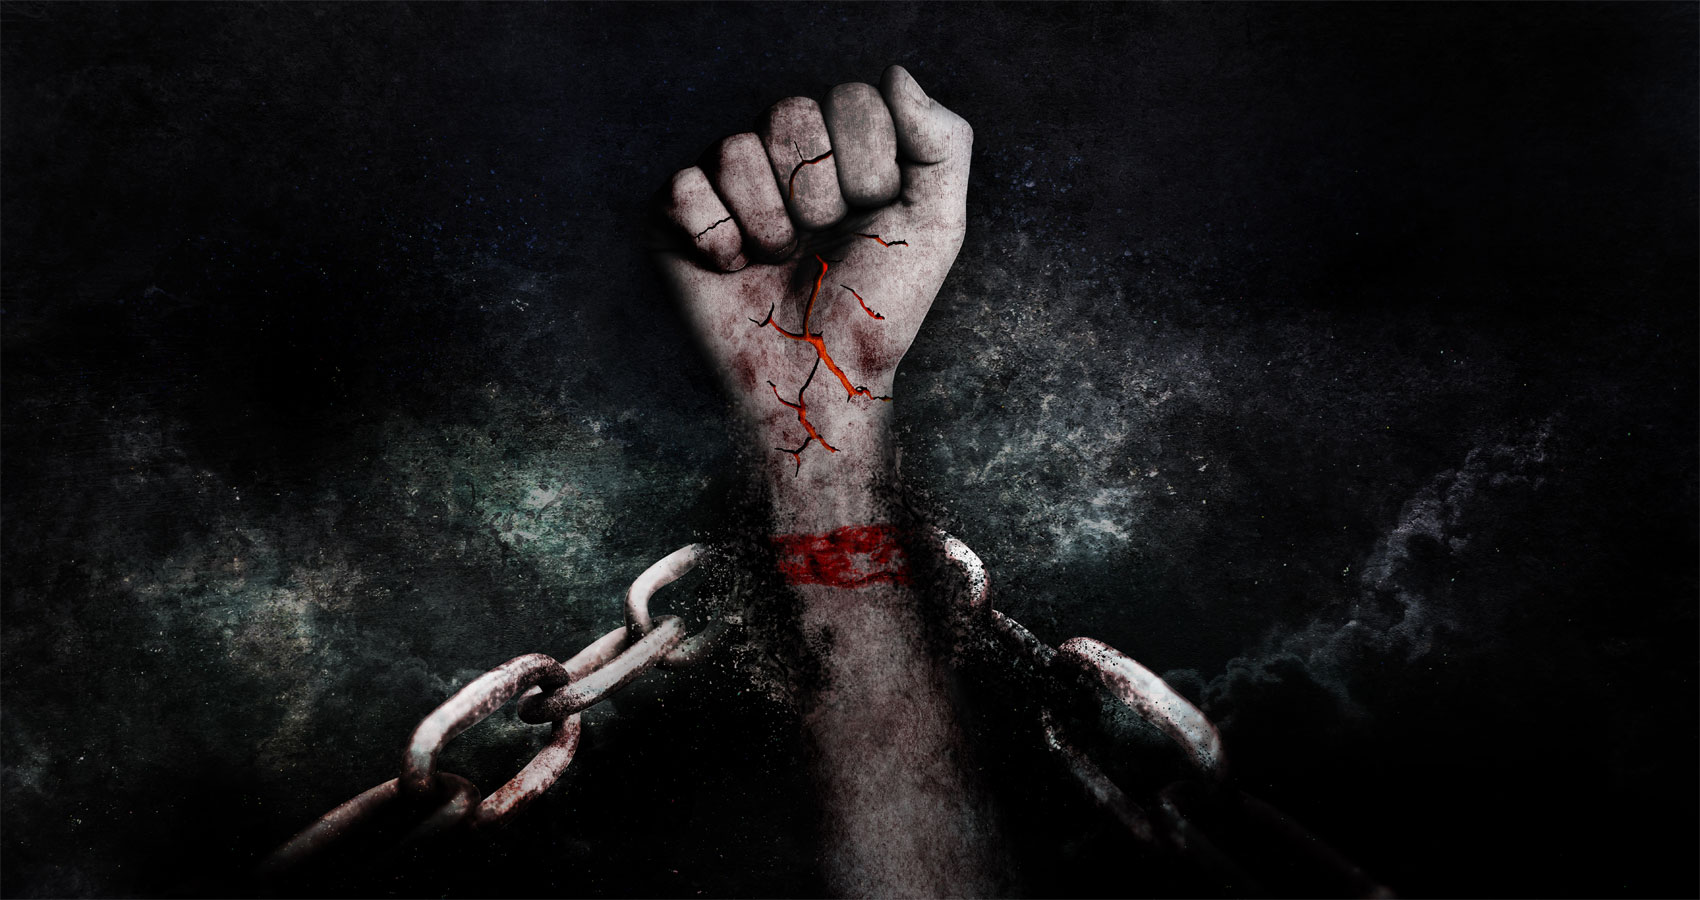 Slaves, a poem written by Aida, a retired teacher, at Spillwords.com